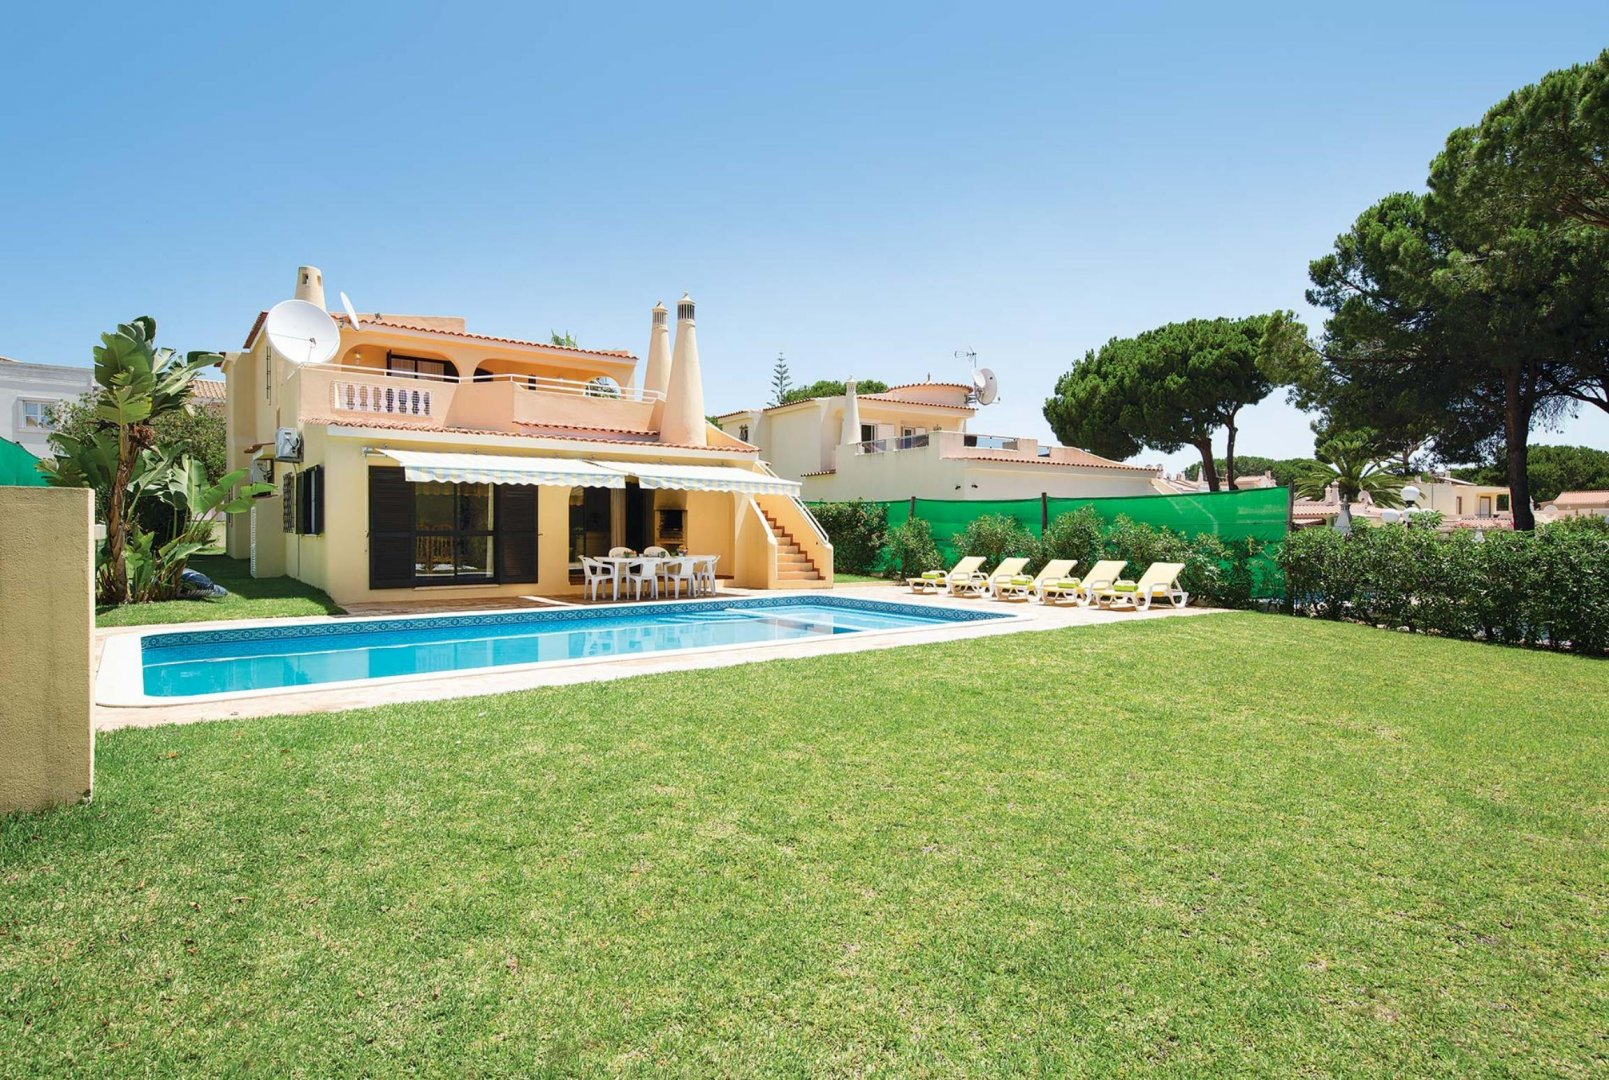 Self-Catering Daffodil in Vilamoura